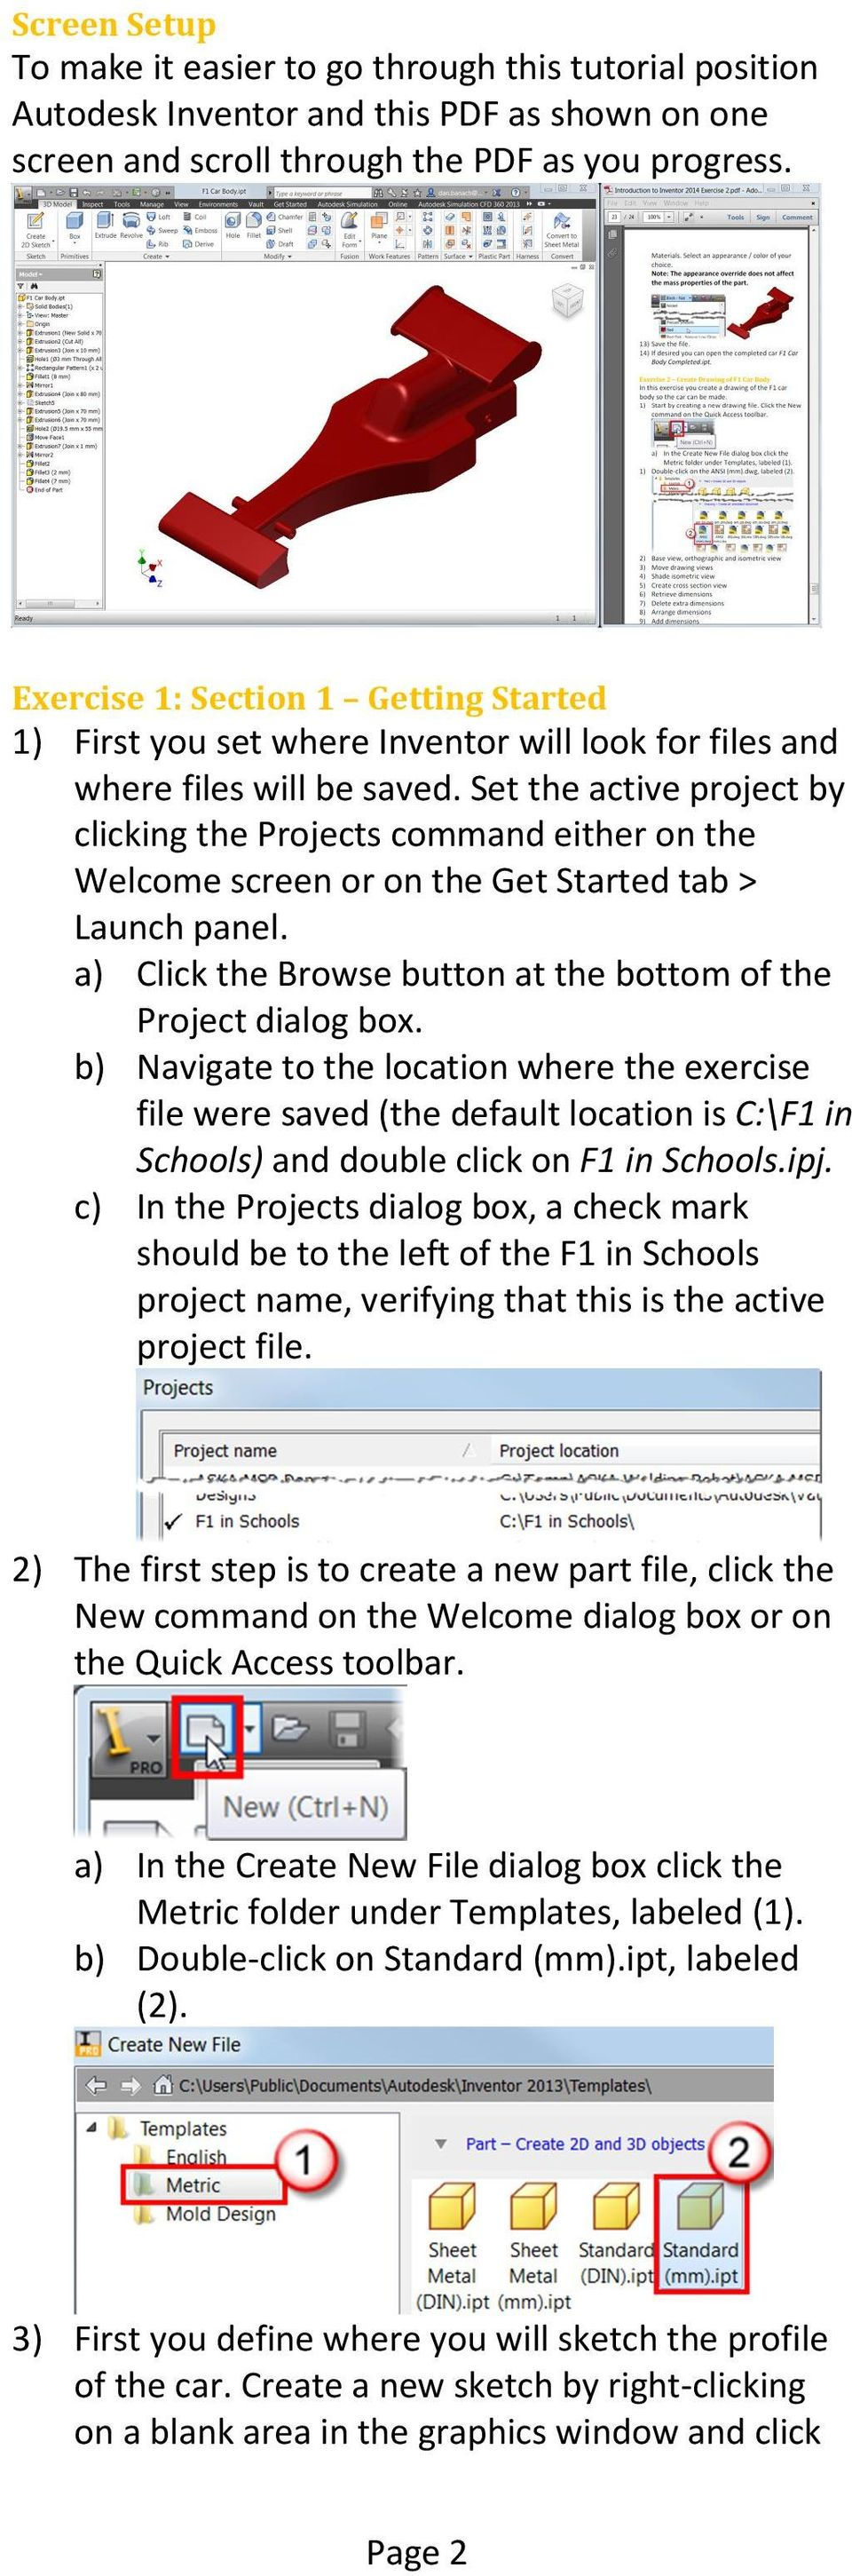 Set the active project by clicking the Projects command either on the Welcome screen or on the Get Started tab > Launch panel. a) Click the Browse button at the bottom of the Project dialog box.